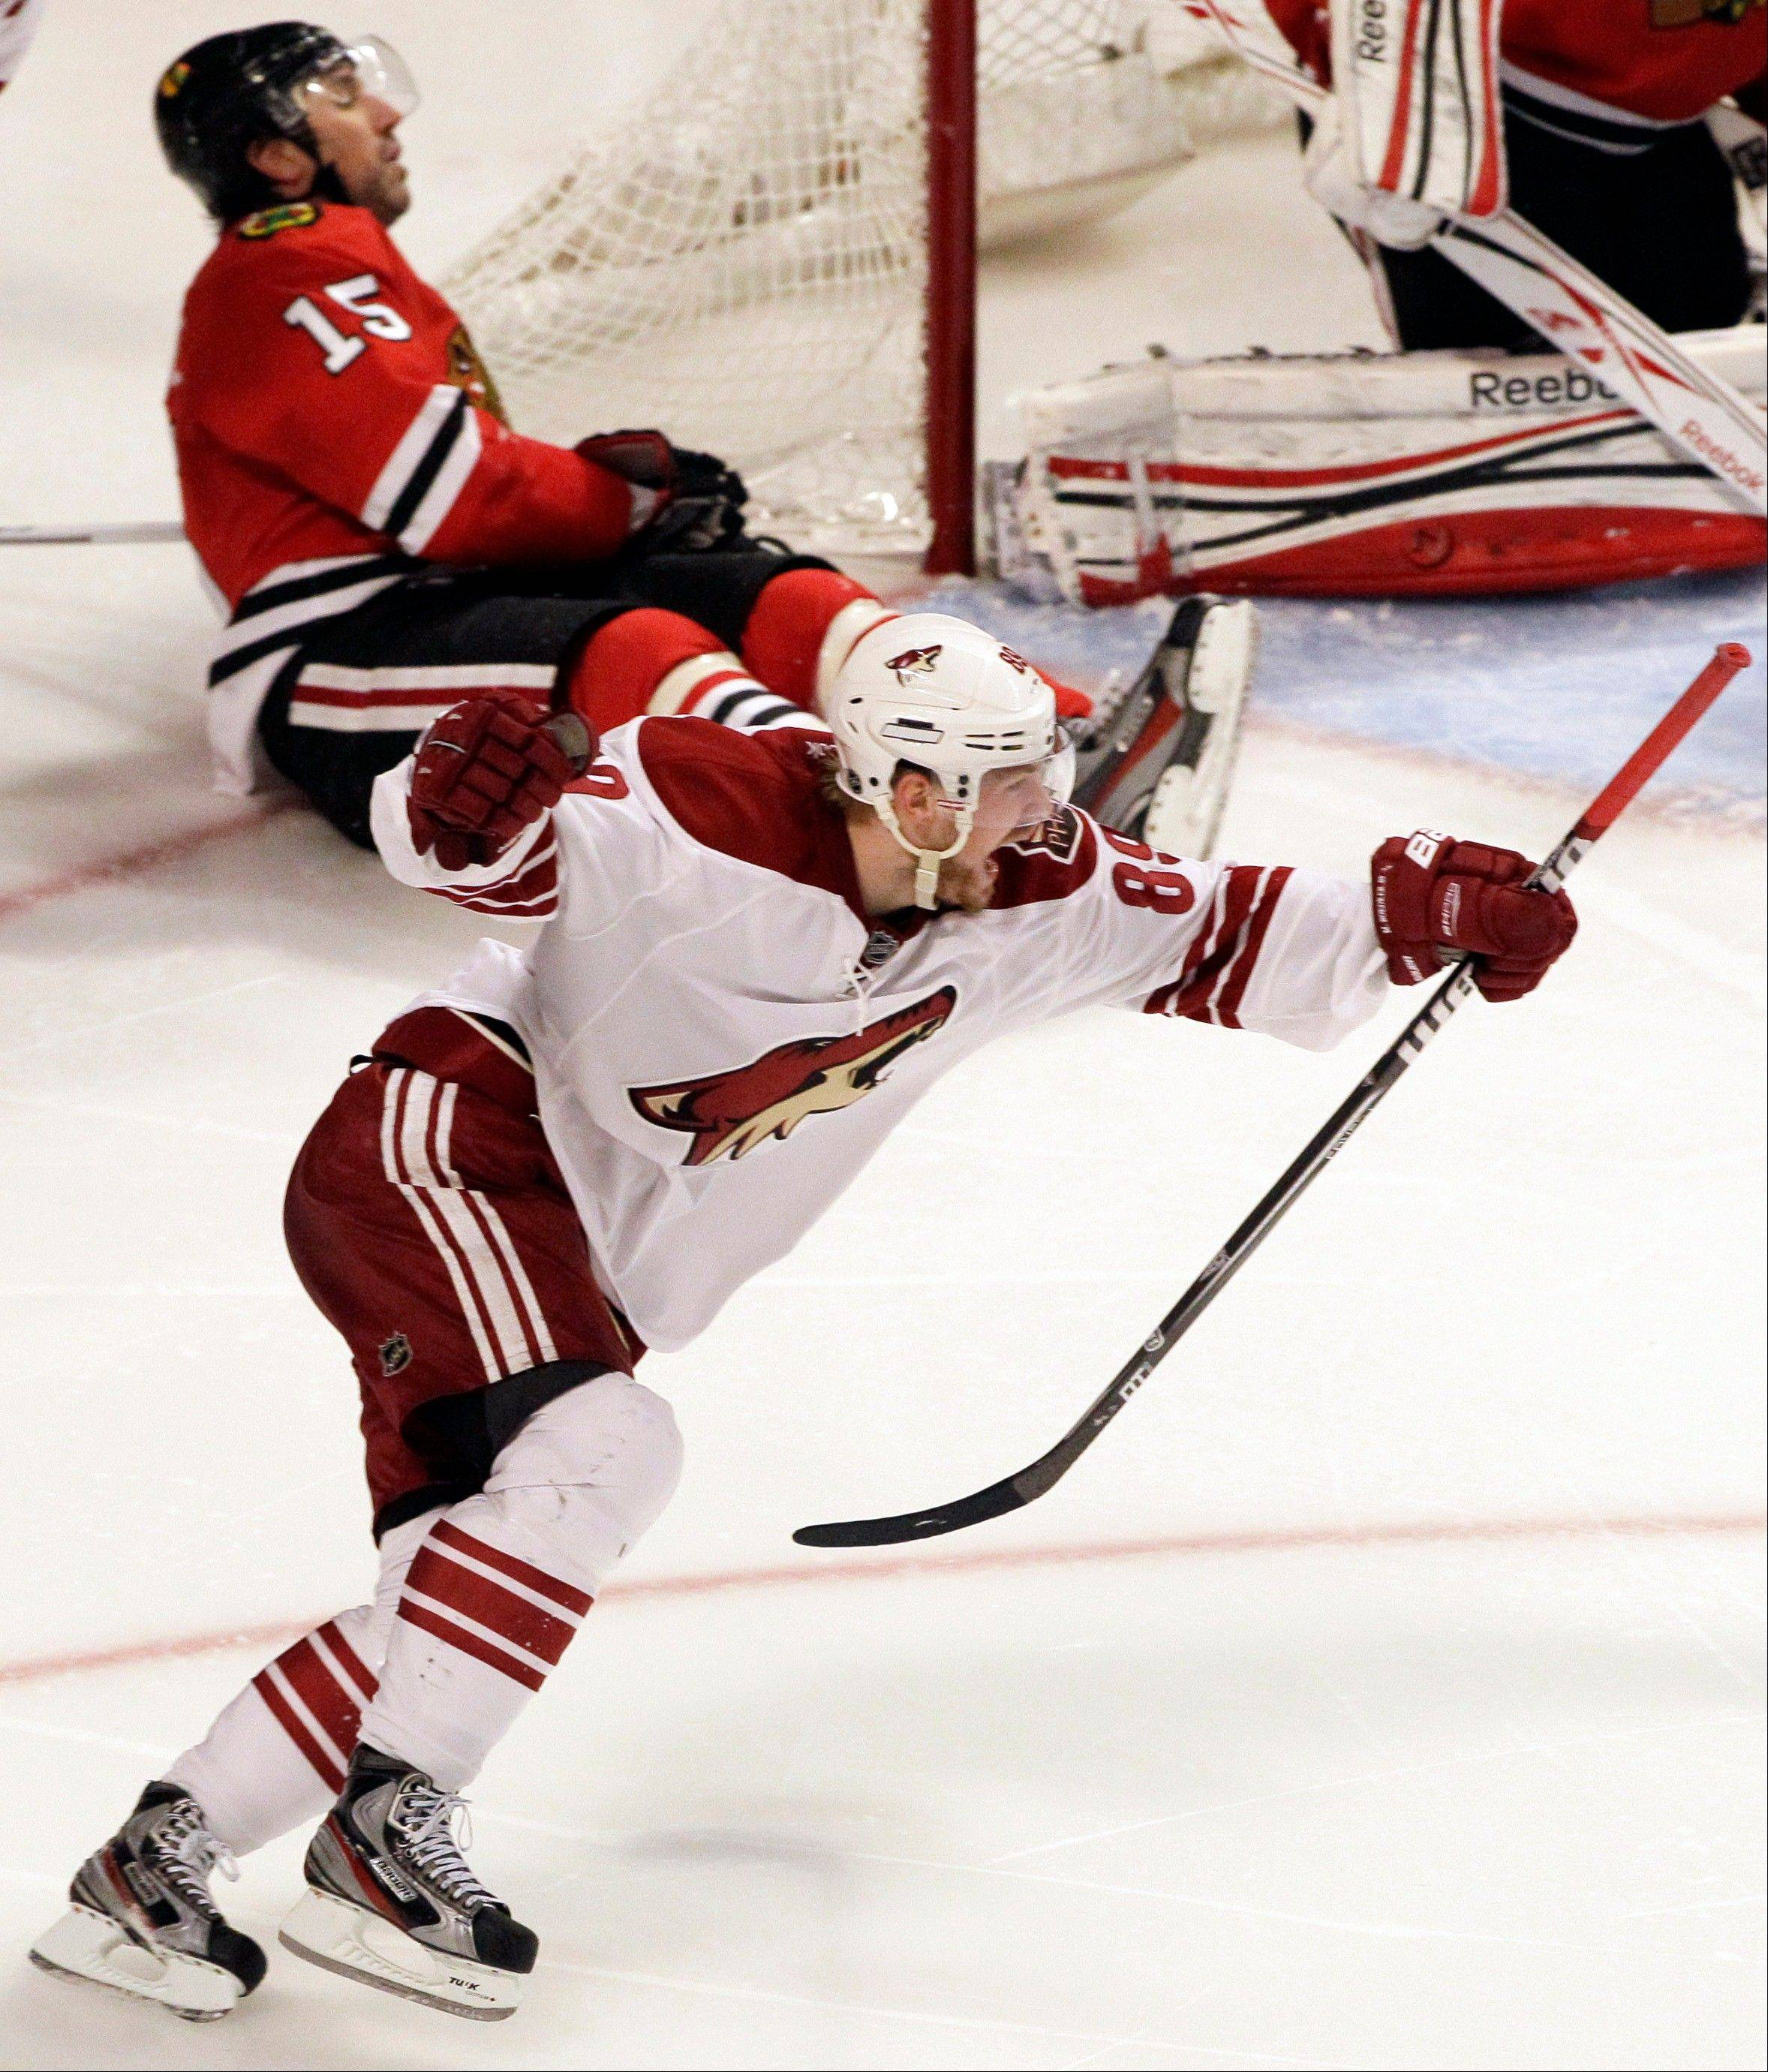 Phoenix Coyotes' Mikkel Boedker (89) celebrates his game-winning goal as Chicago Blackhawks' Andrew Brunette (15) reacts during the overtime period of Game 4 of an NHL hockey Stanley Cup first-round playoff series in Chicago, Thursday, April 19, 2012. The Coyotes won 3-2.